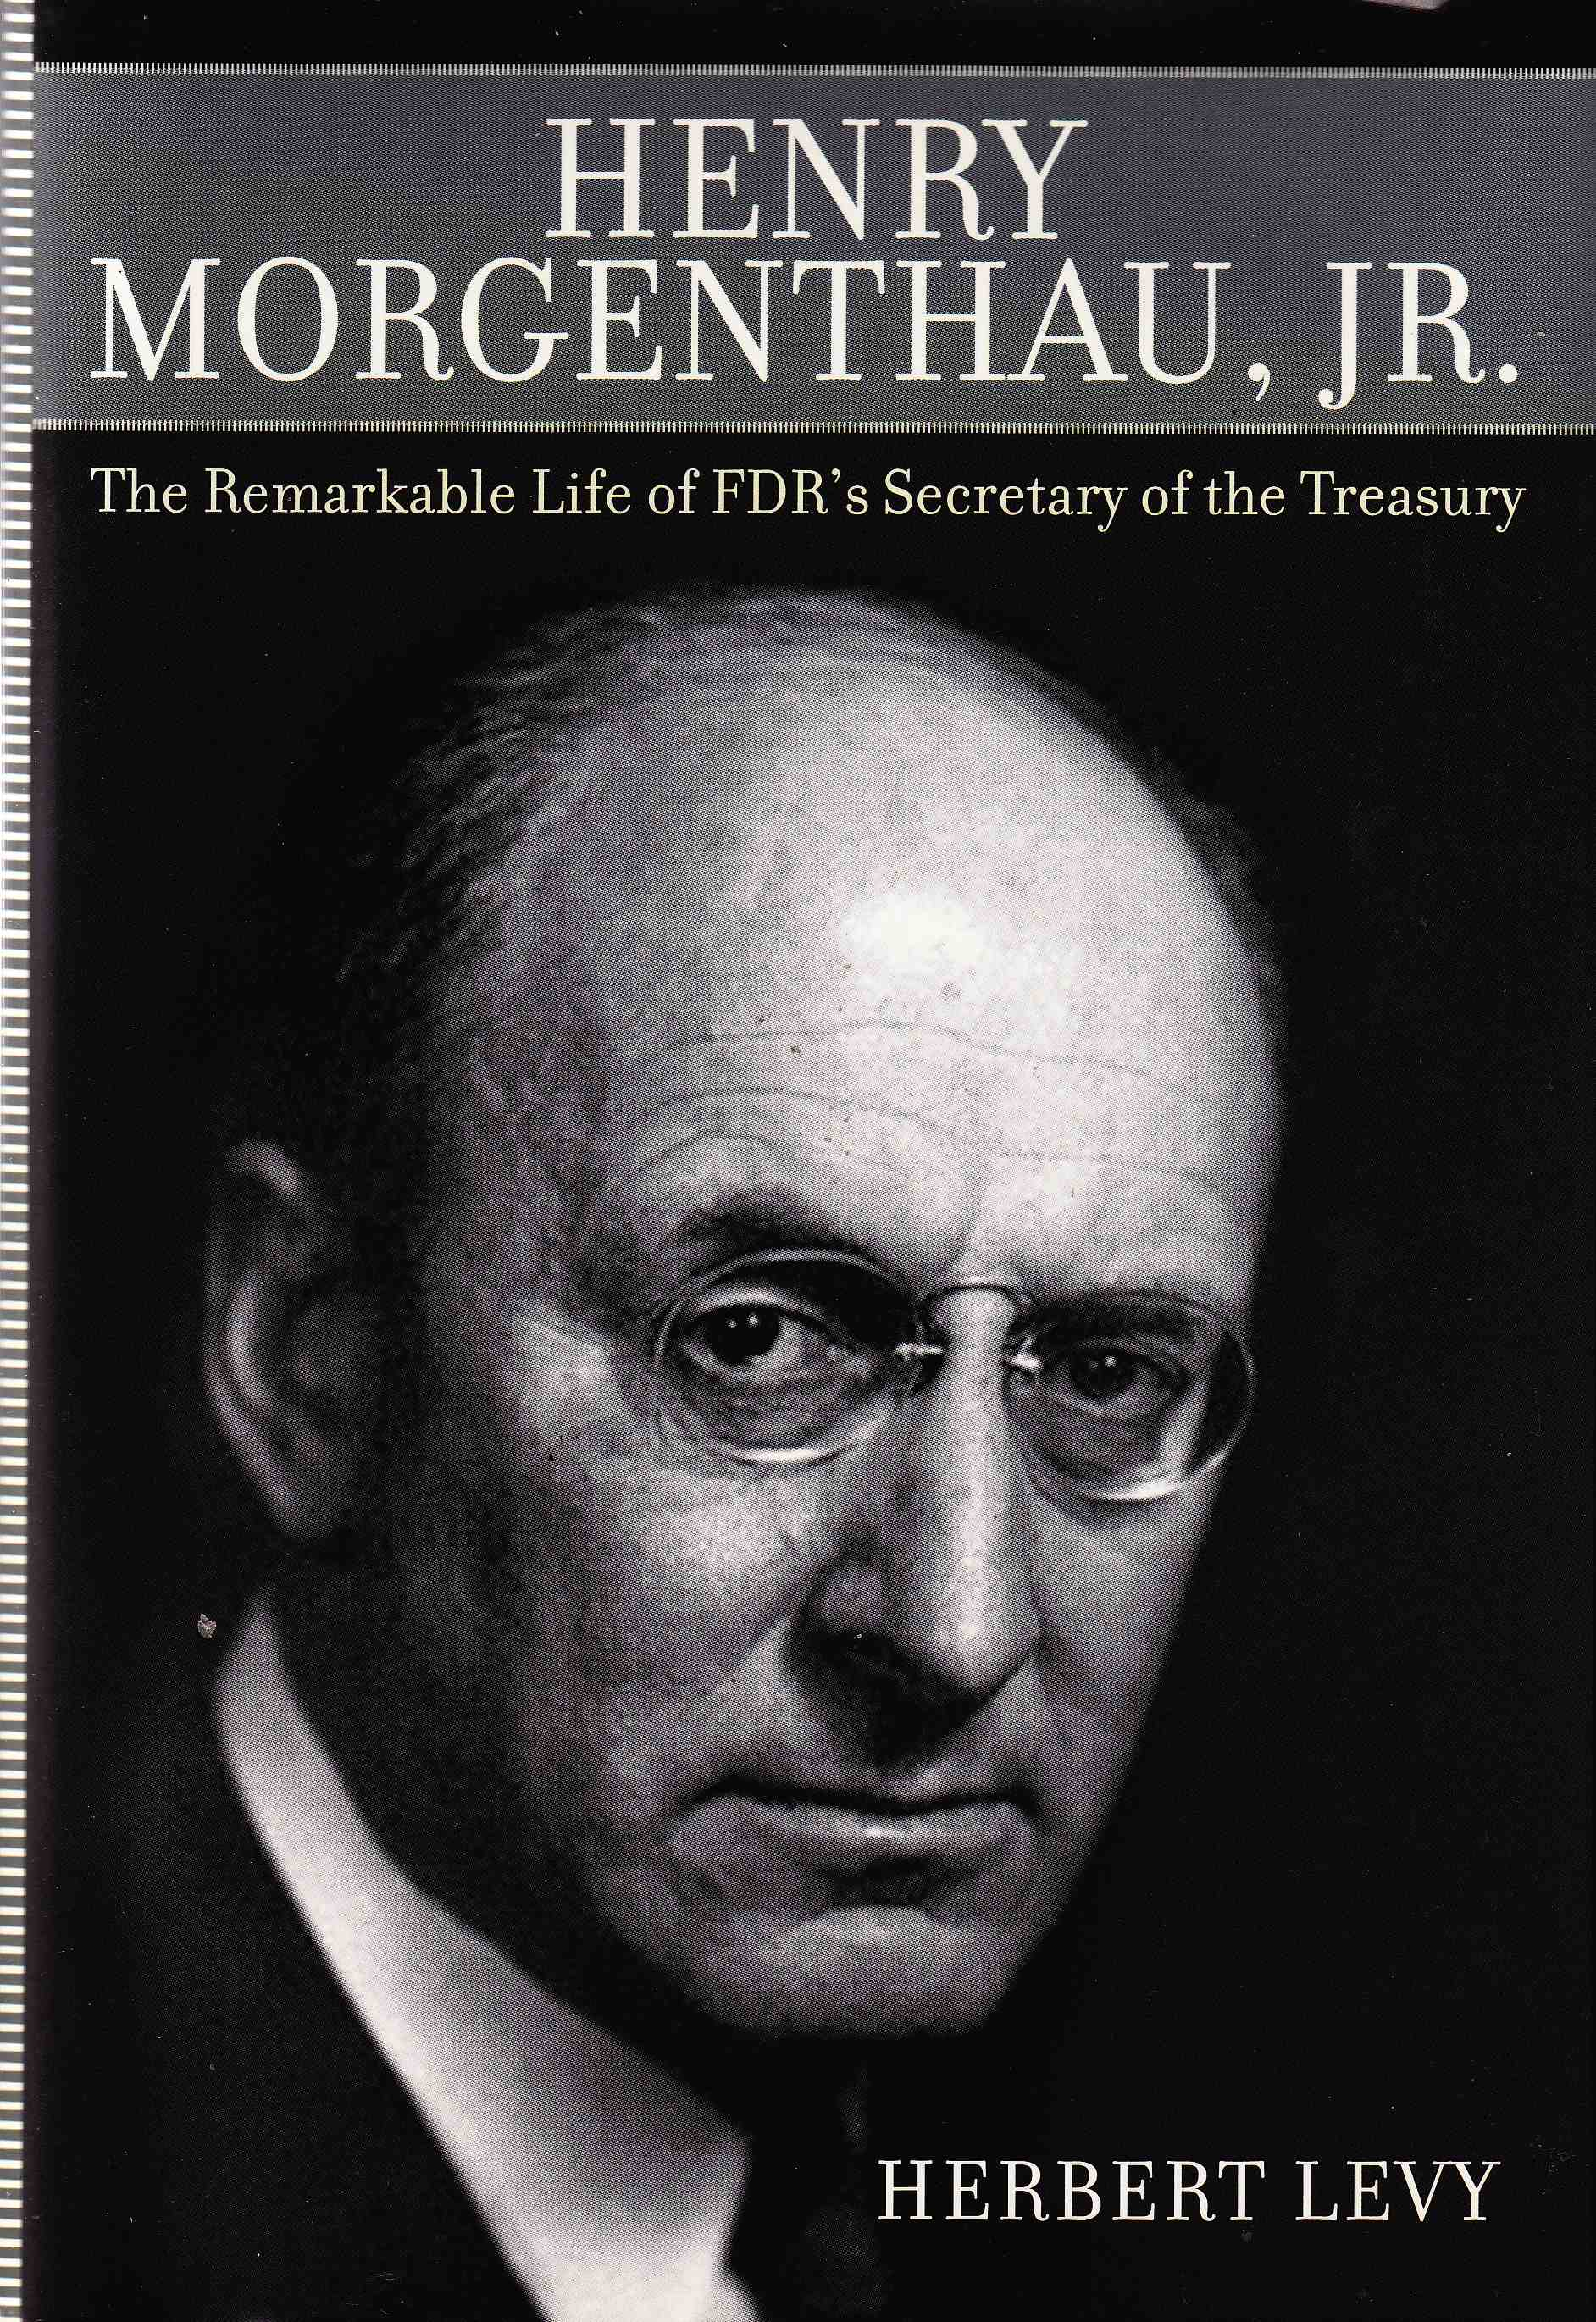 The Morgenthau Hypothesis